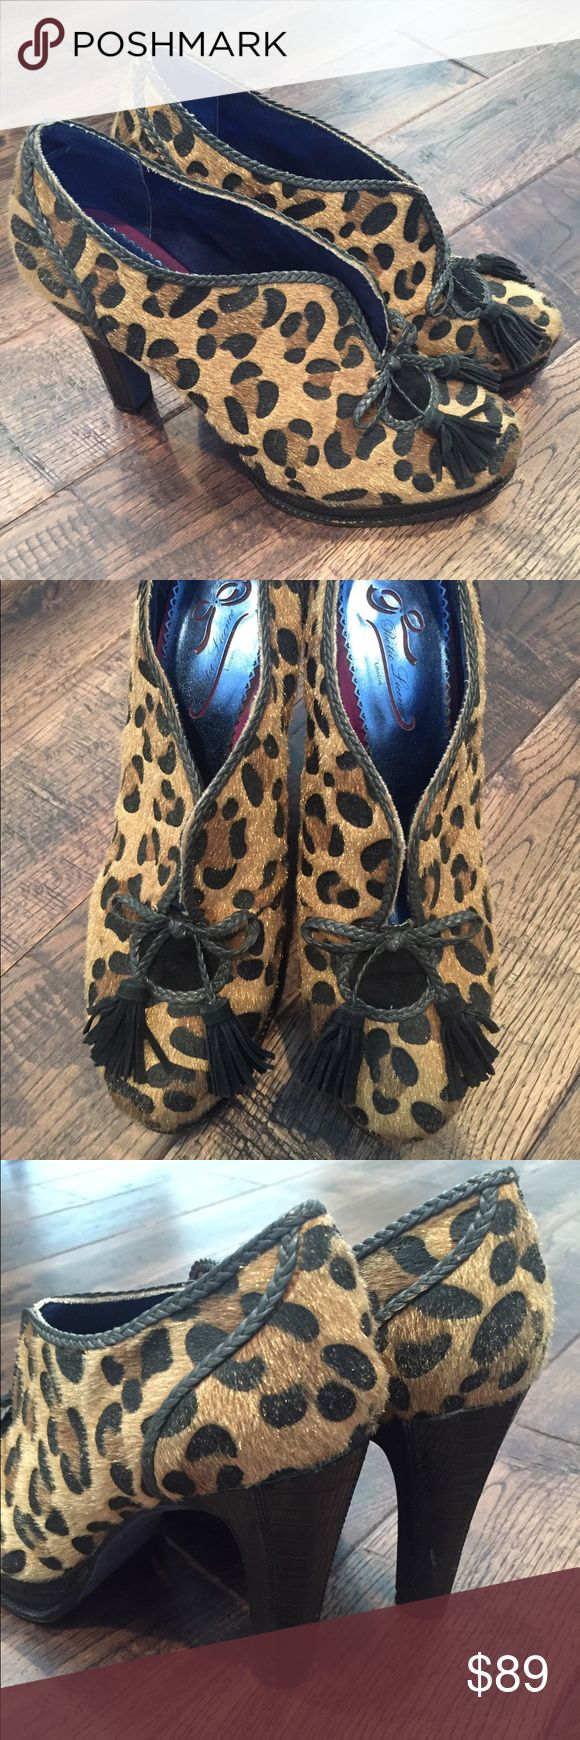 Poetic License Leopard Print Heels size 10 Great shoes from a smoke free home - gently used - please see pics for details. Poetic License  Shoes Heels